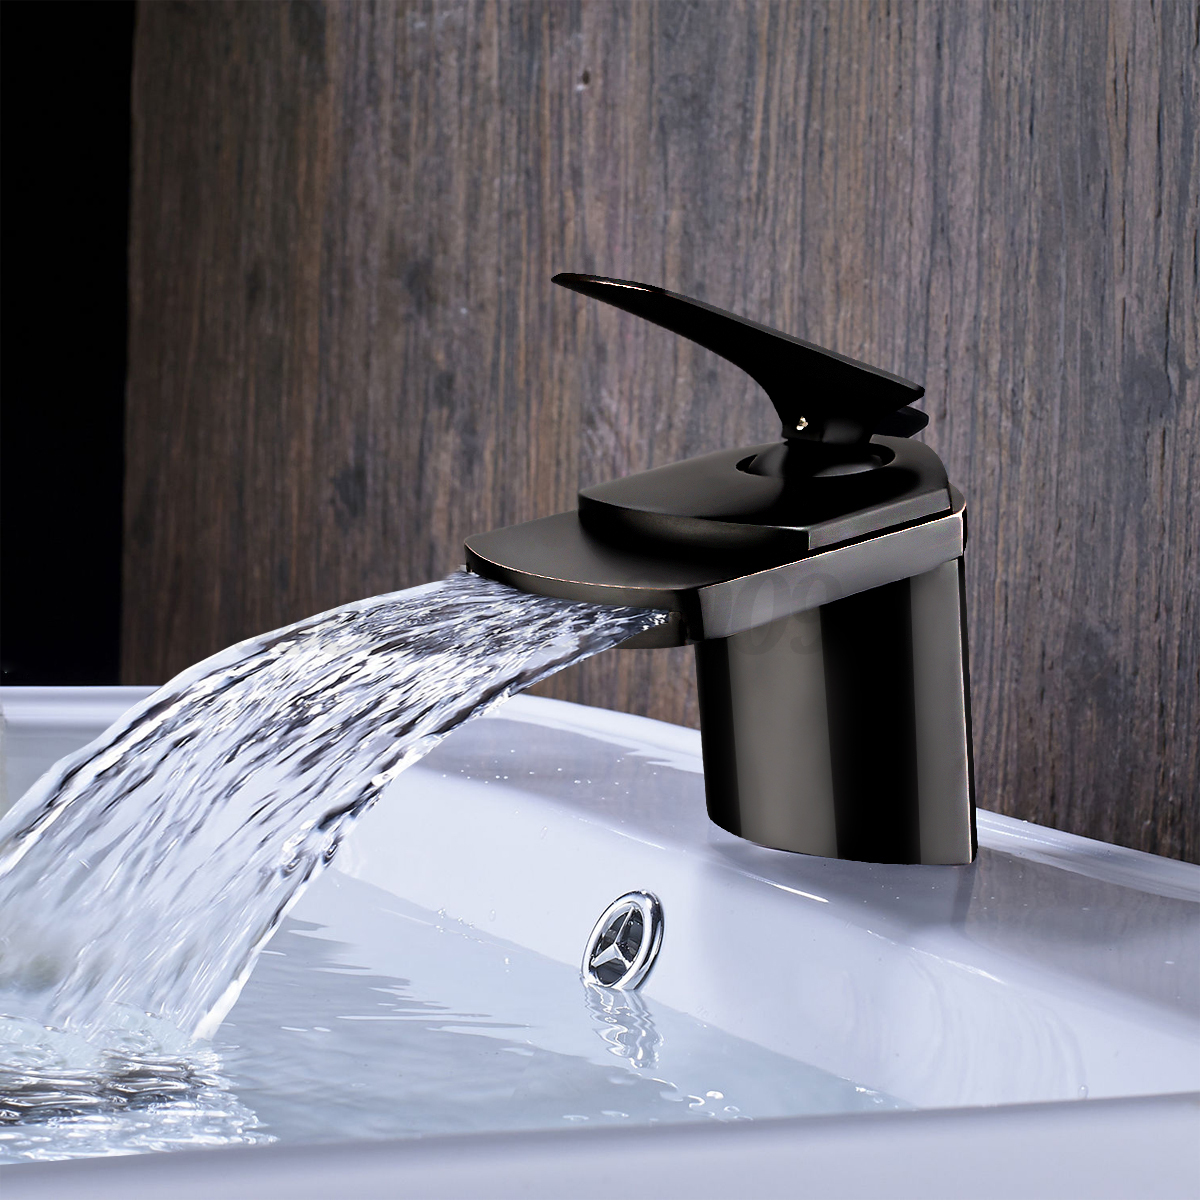 Oil Rubbed Bronze Bathroom Waterfall Faucet Sink Vessel Basin Kitchen Mixer Tap Ebay